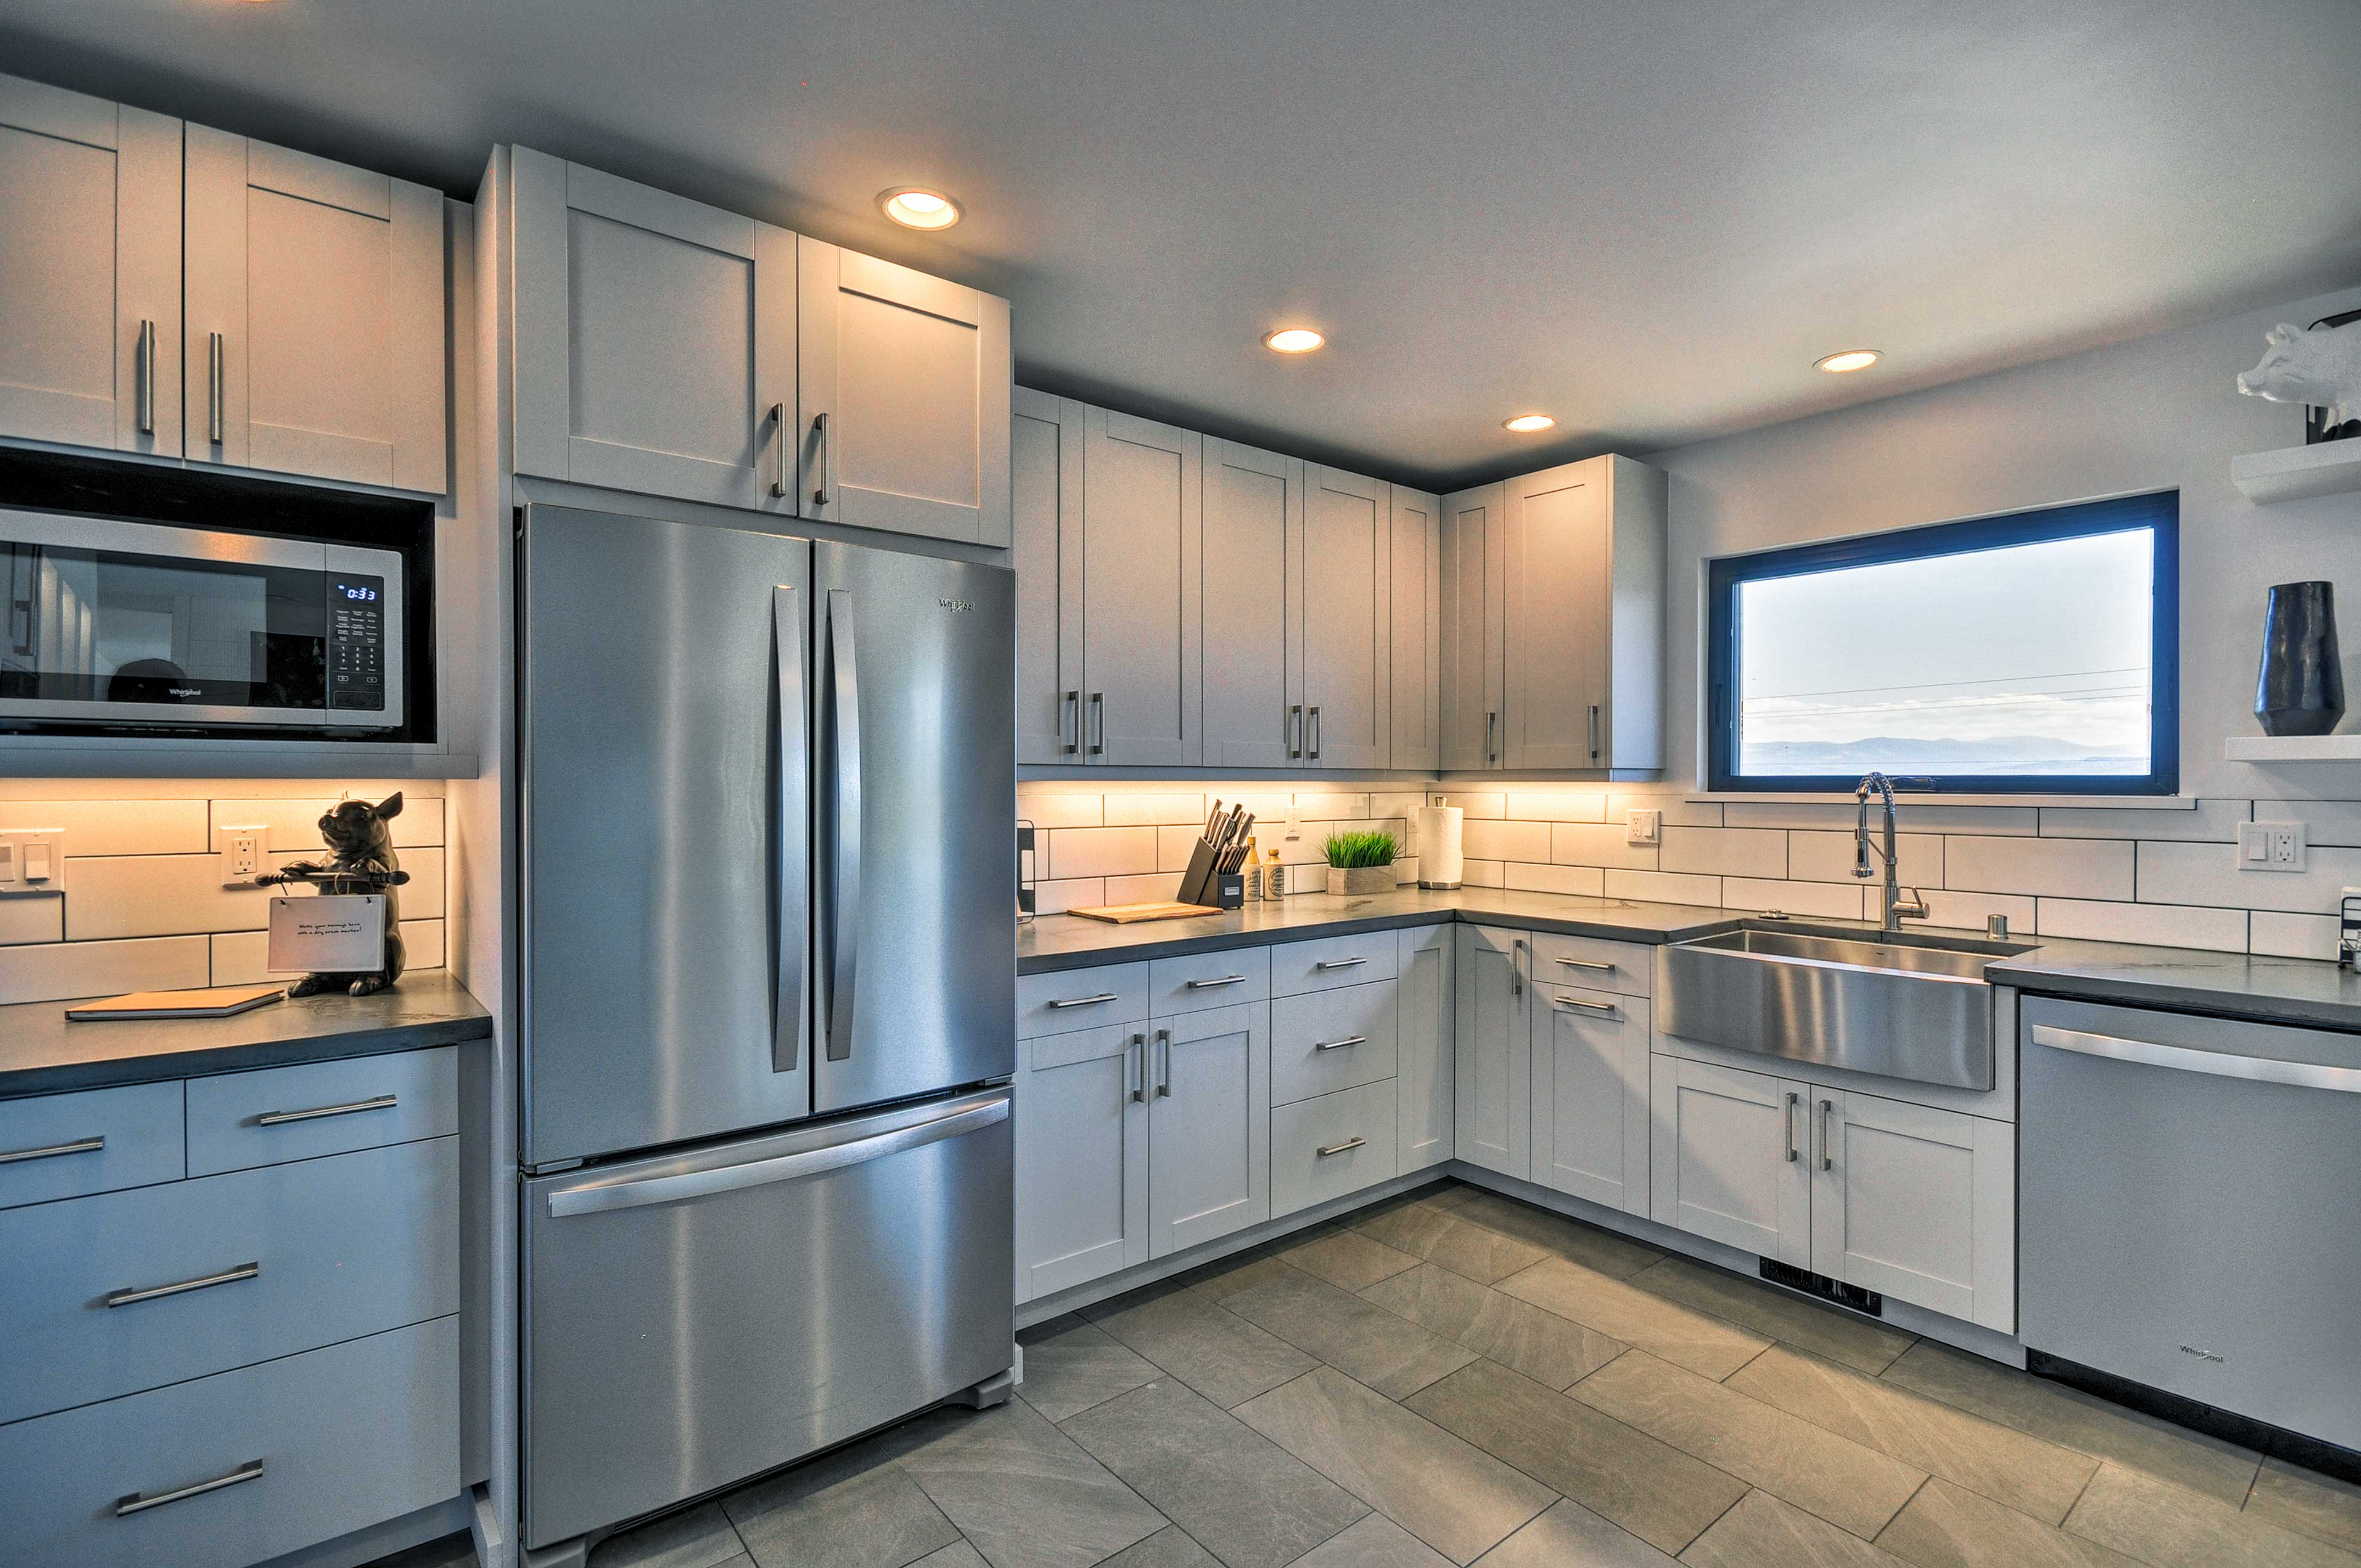 The stainless steel appliances will inspire your inner Top Chef.